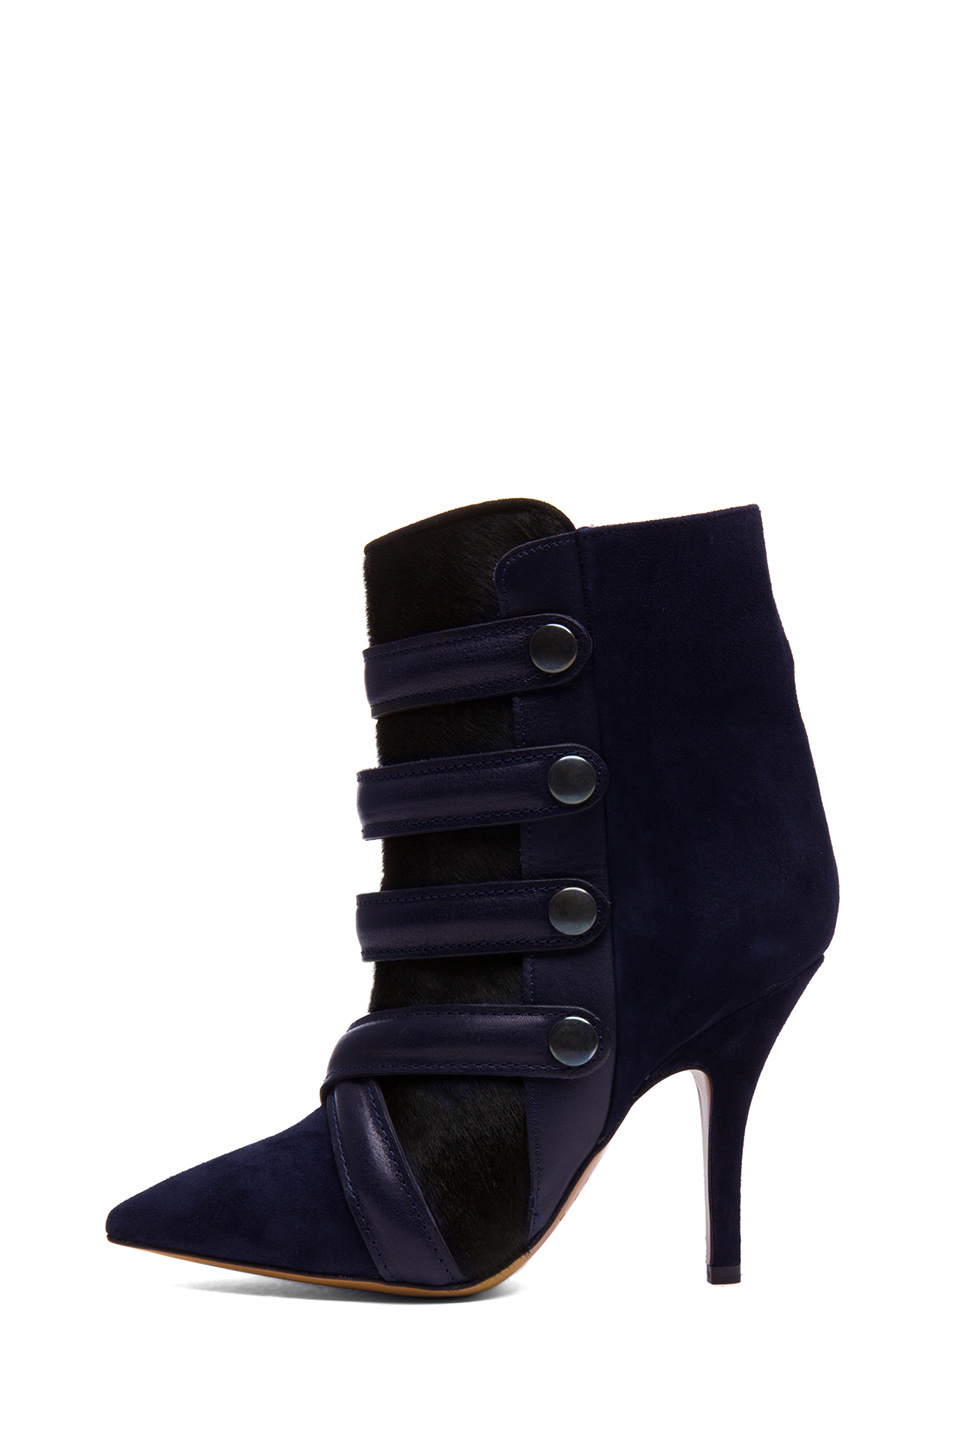 Isabel Marant|Tacy Goat Suede Leather Pony Booties in Midnight